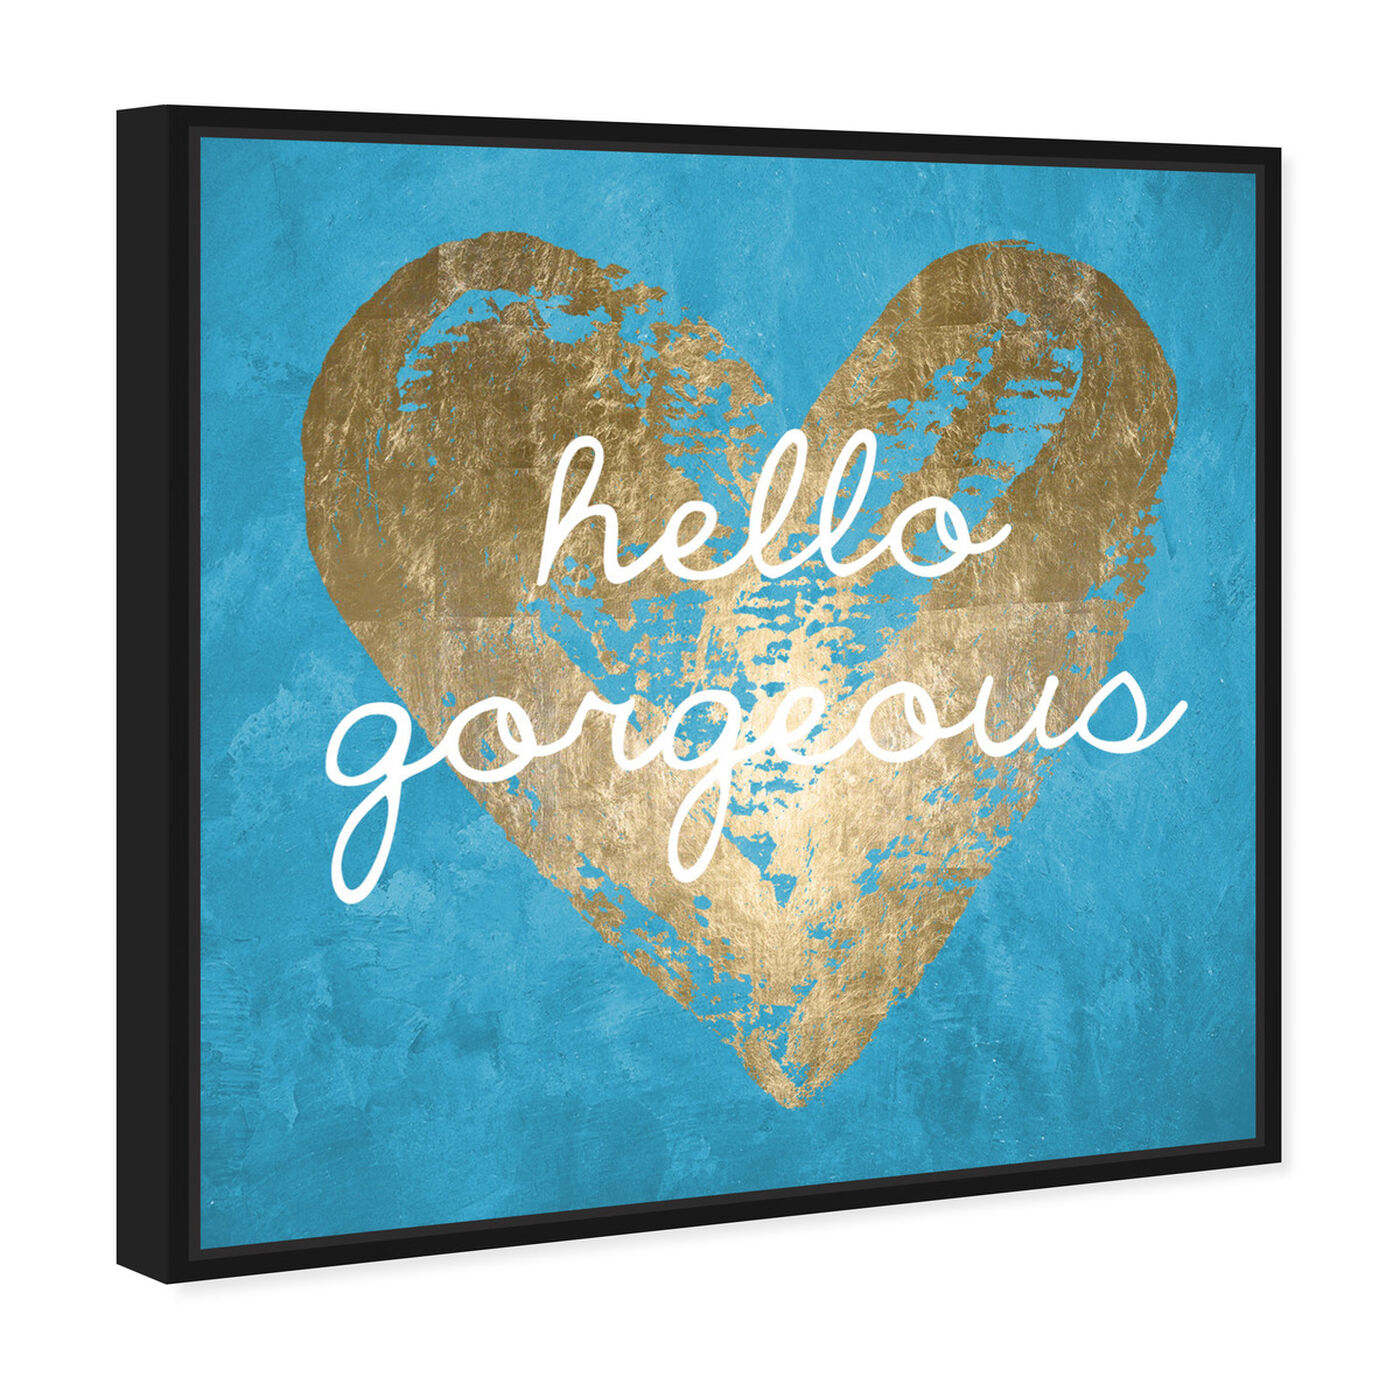 Angled view of Gorgeous Salute Turquoise featuring fashion and glam and hearts art.